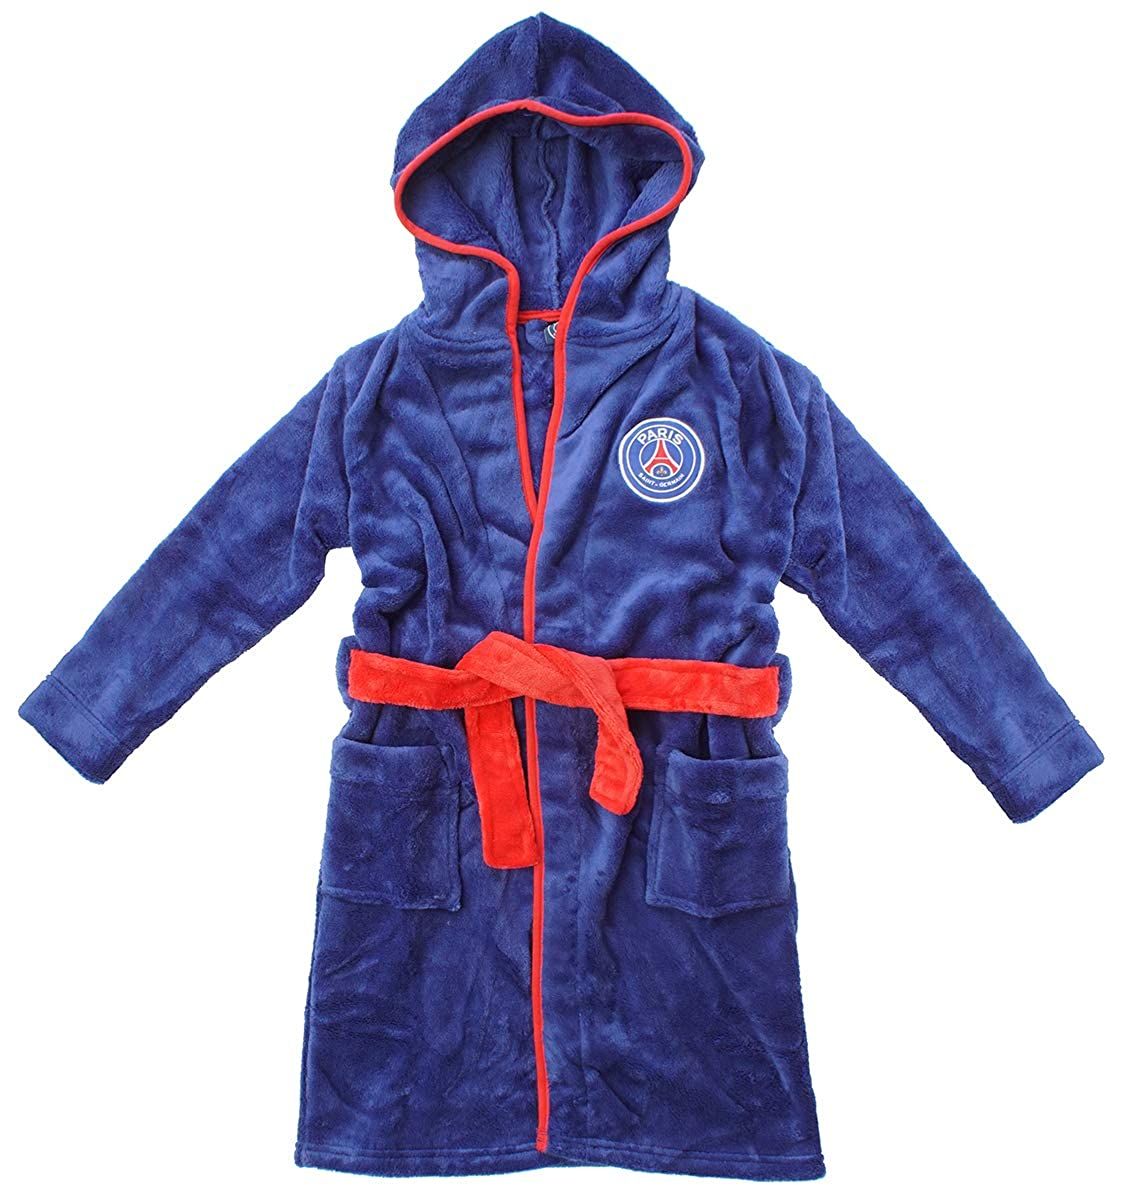 Boys Official PSG Paris Saint Germain Hooded Dressing Gown Bathrobe Sizes from 3 to 12 Years